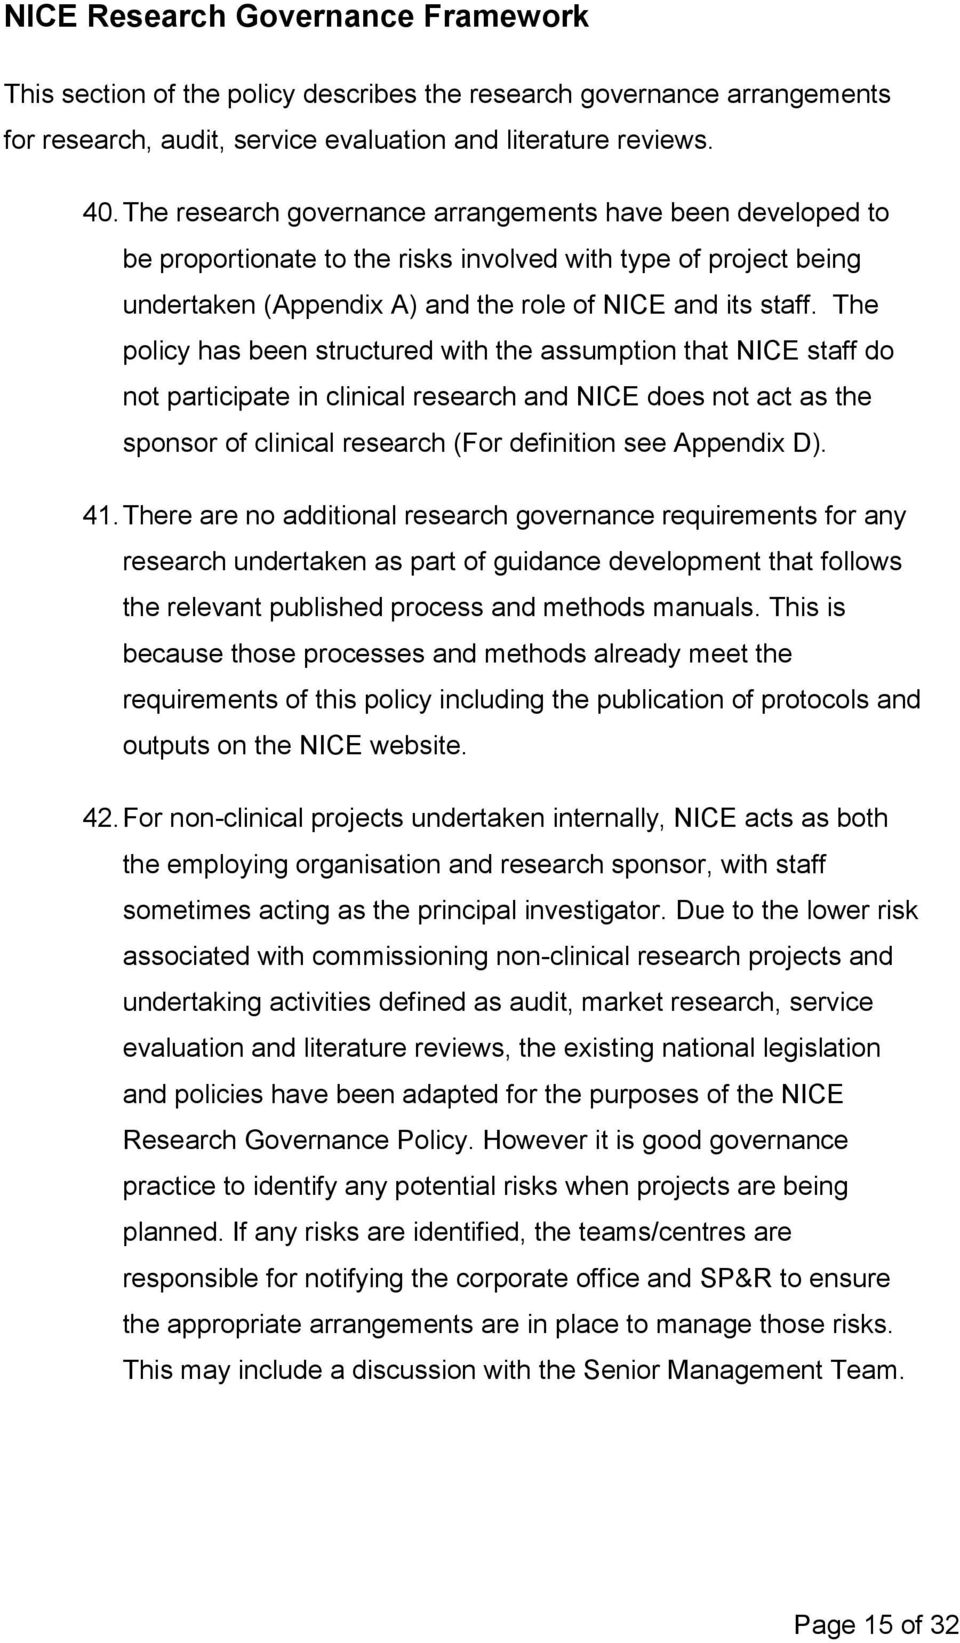 The policy has been structured with the assumption that NICE staff do not participate in clinical research and NICE does not act as the sponsor of clinical research (For definition see Appendix D).